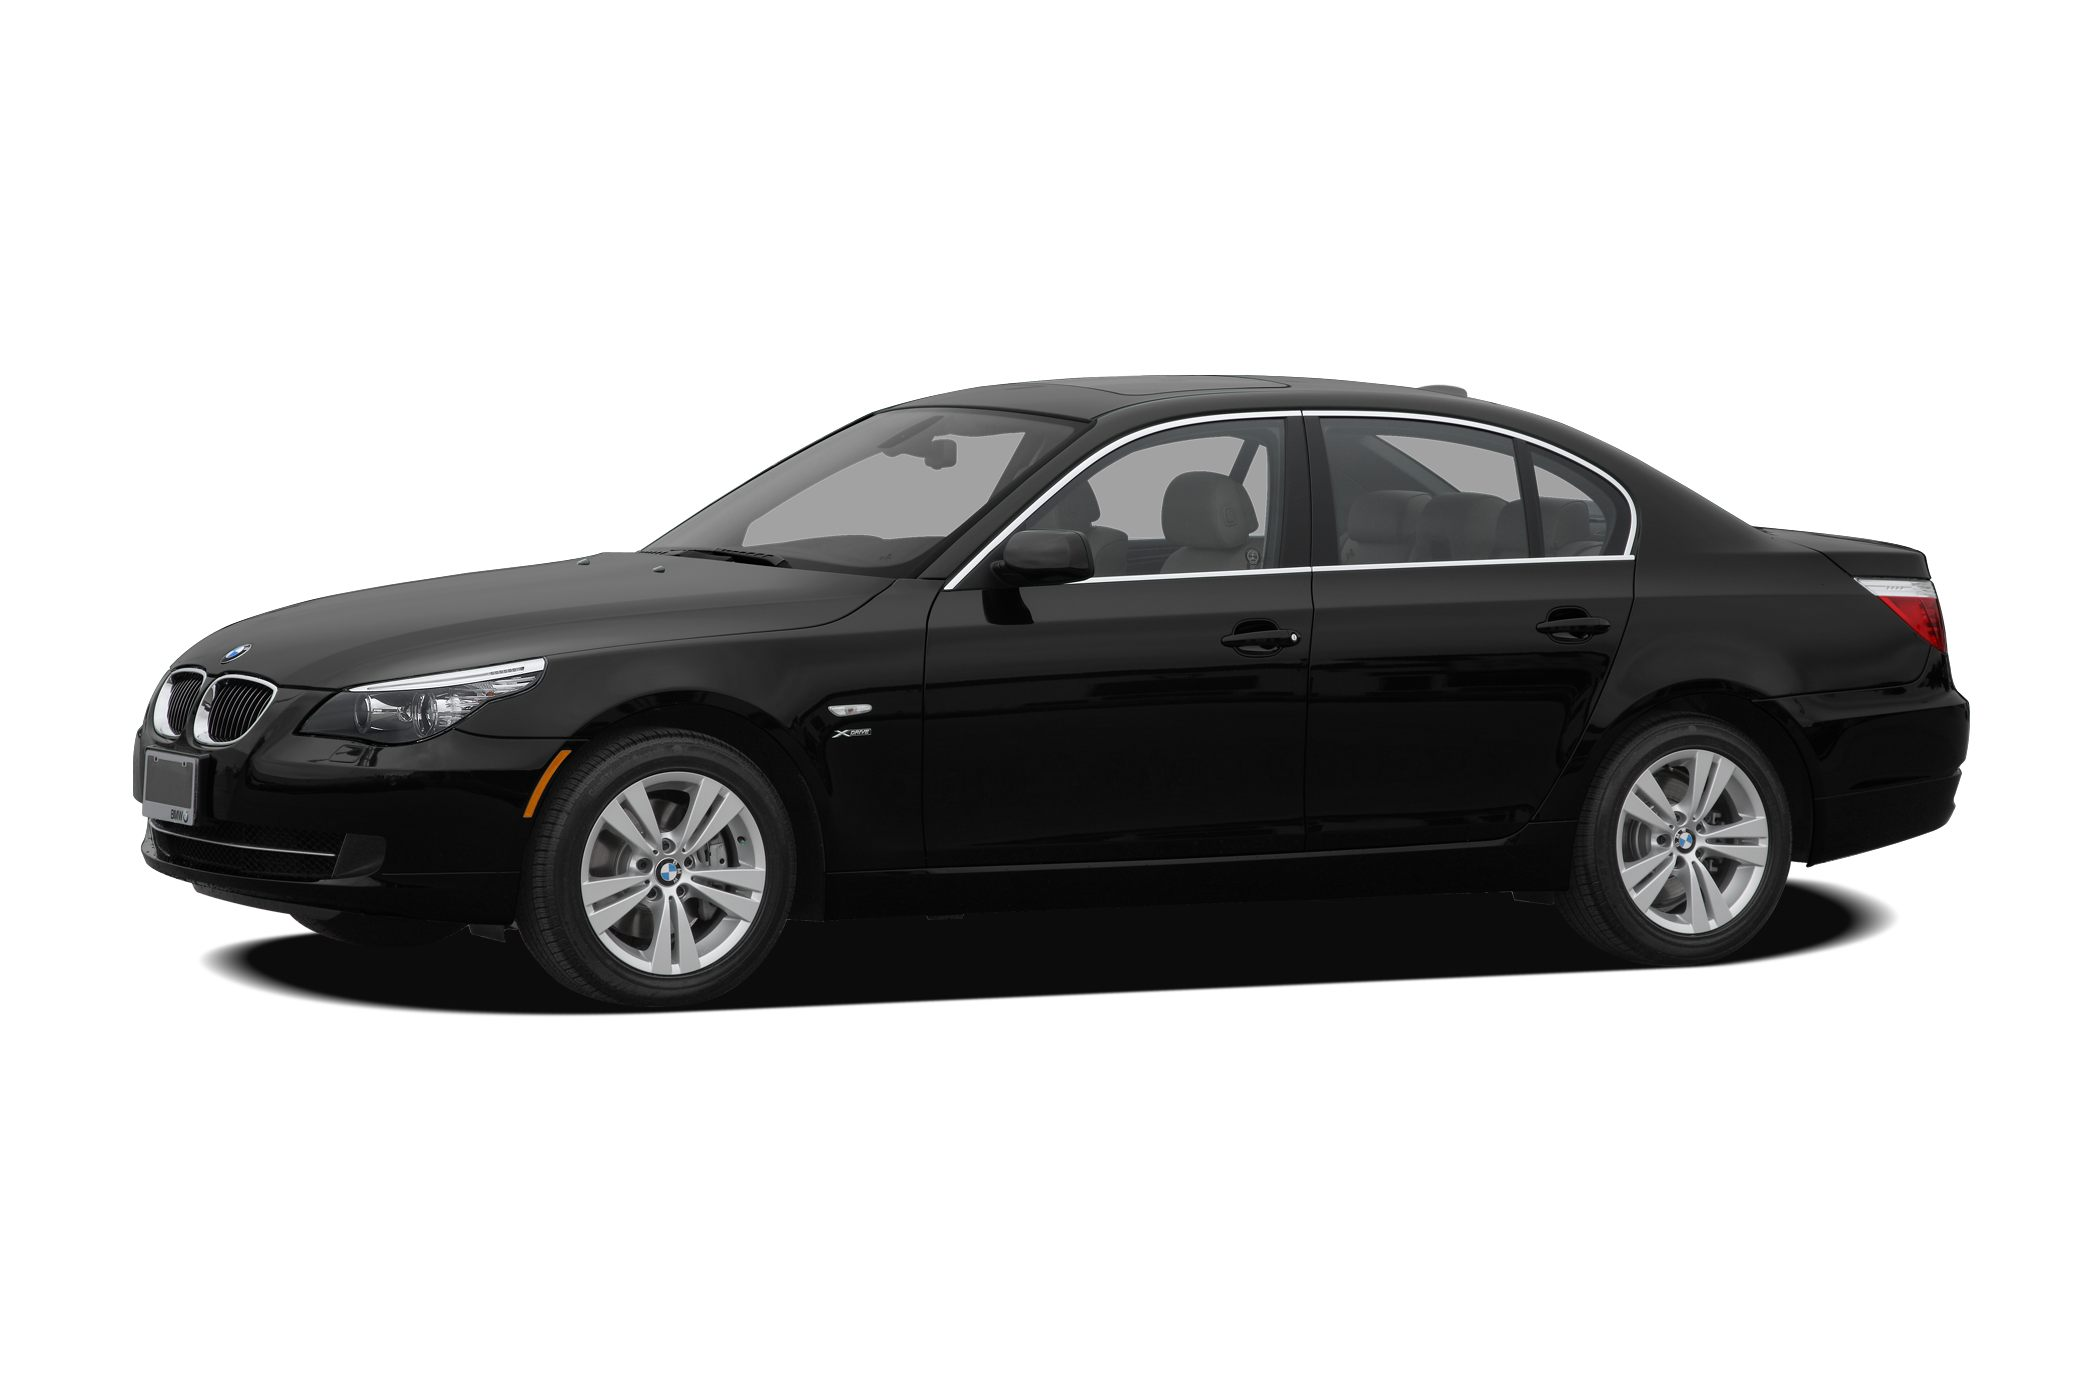 2008 BMW 5 Series 535i OUR PRICESYoure probably wondering why our prices are so much lower than